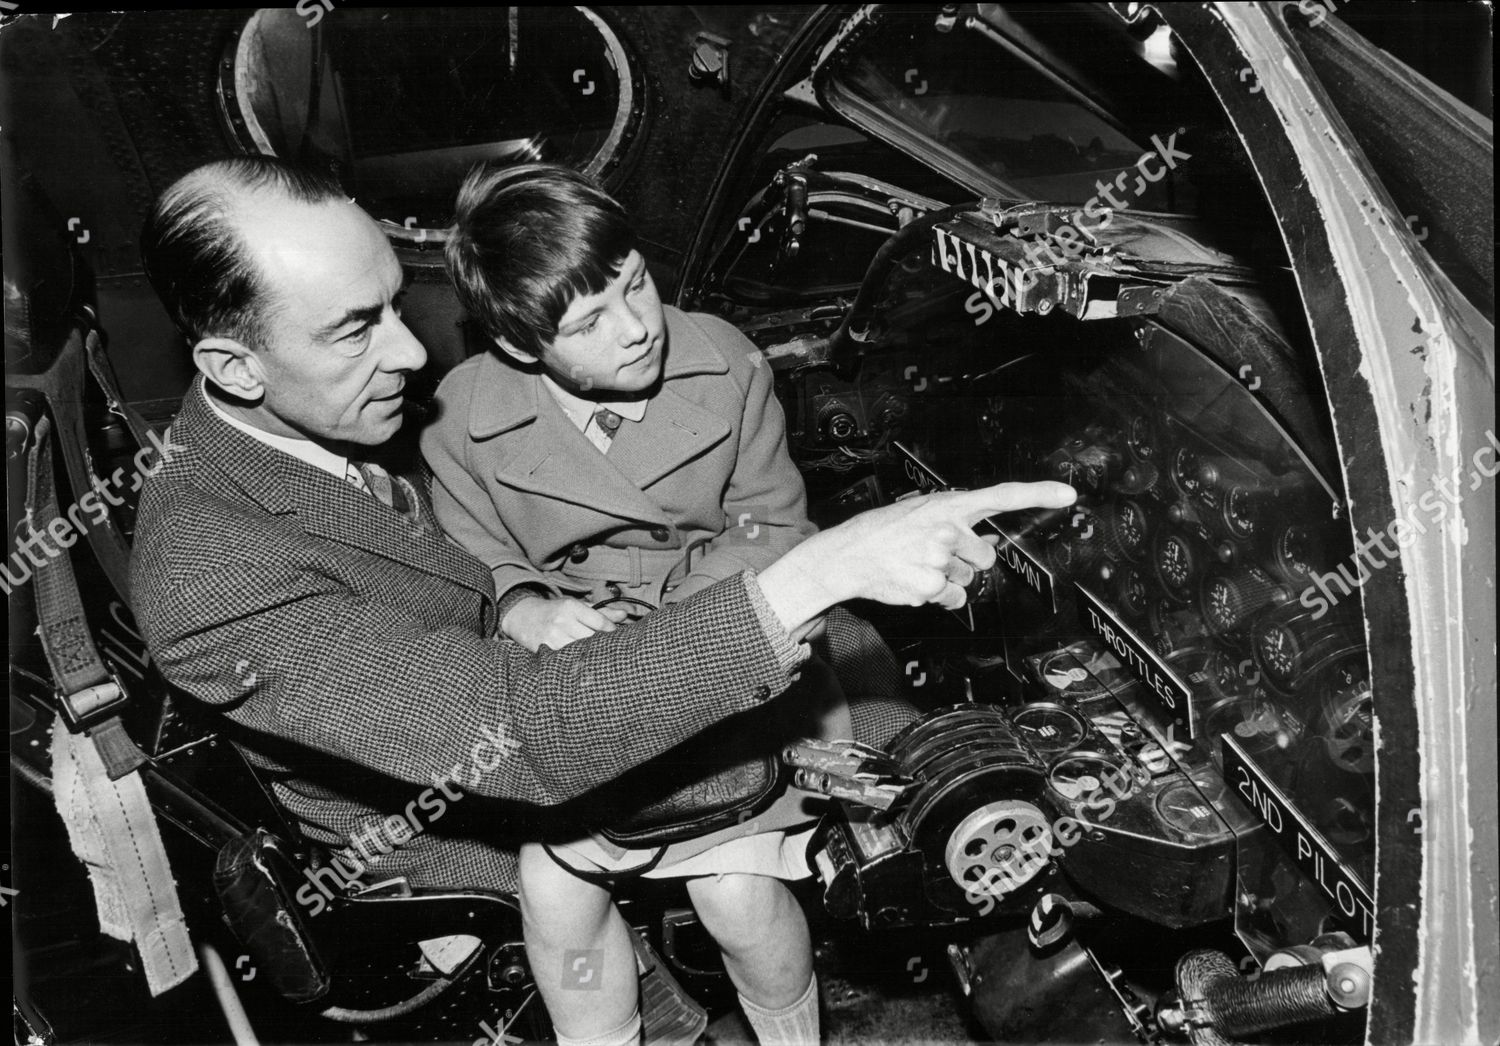 d2cd7e9d ... Squadron Leader Henry Tempest Showing His Daughter Sally (9) The  Cockpit Of Vulcan Bomber On The Raf Stand Stock Image by Derek Cattani for  editorial ...